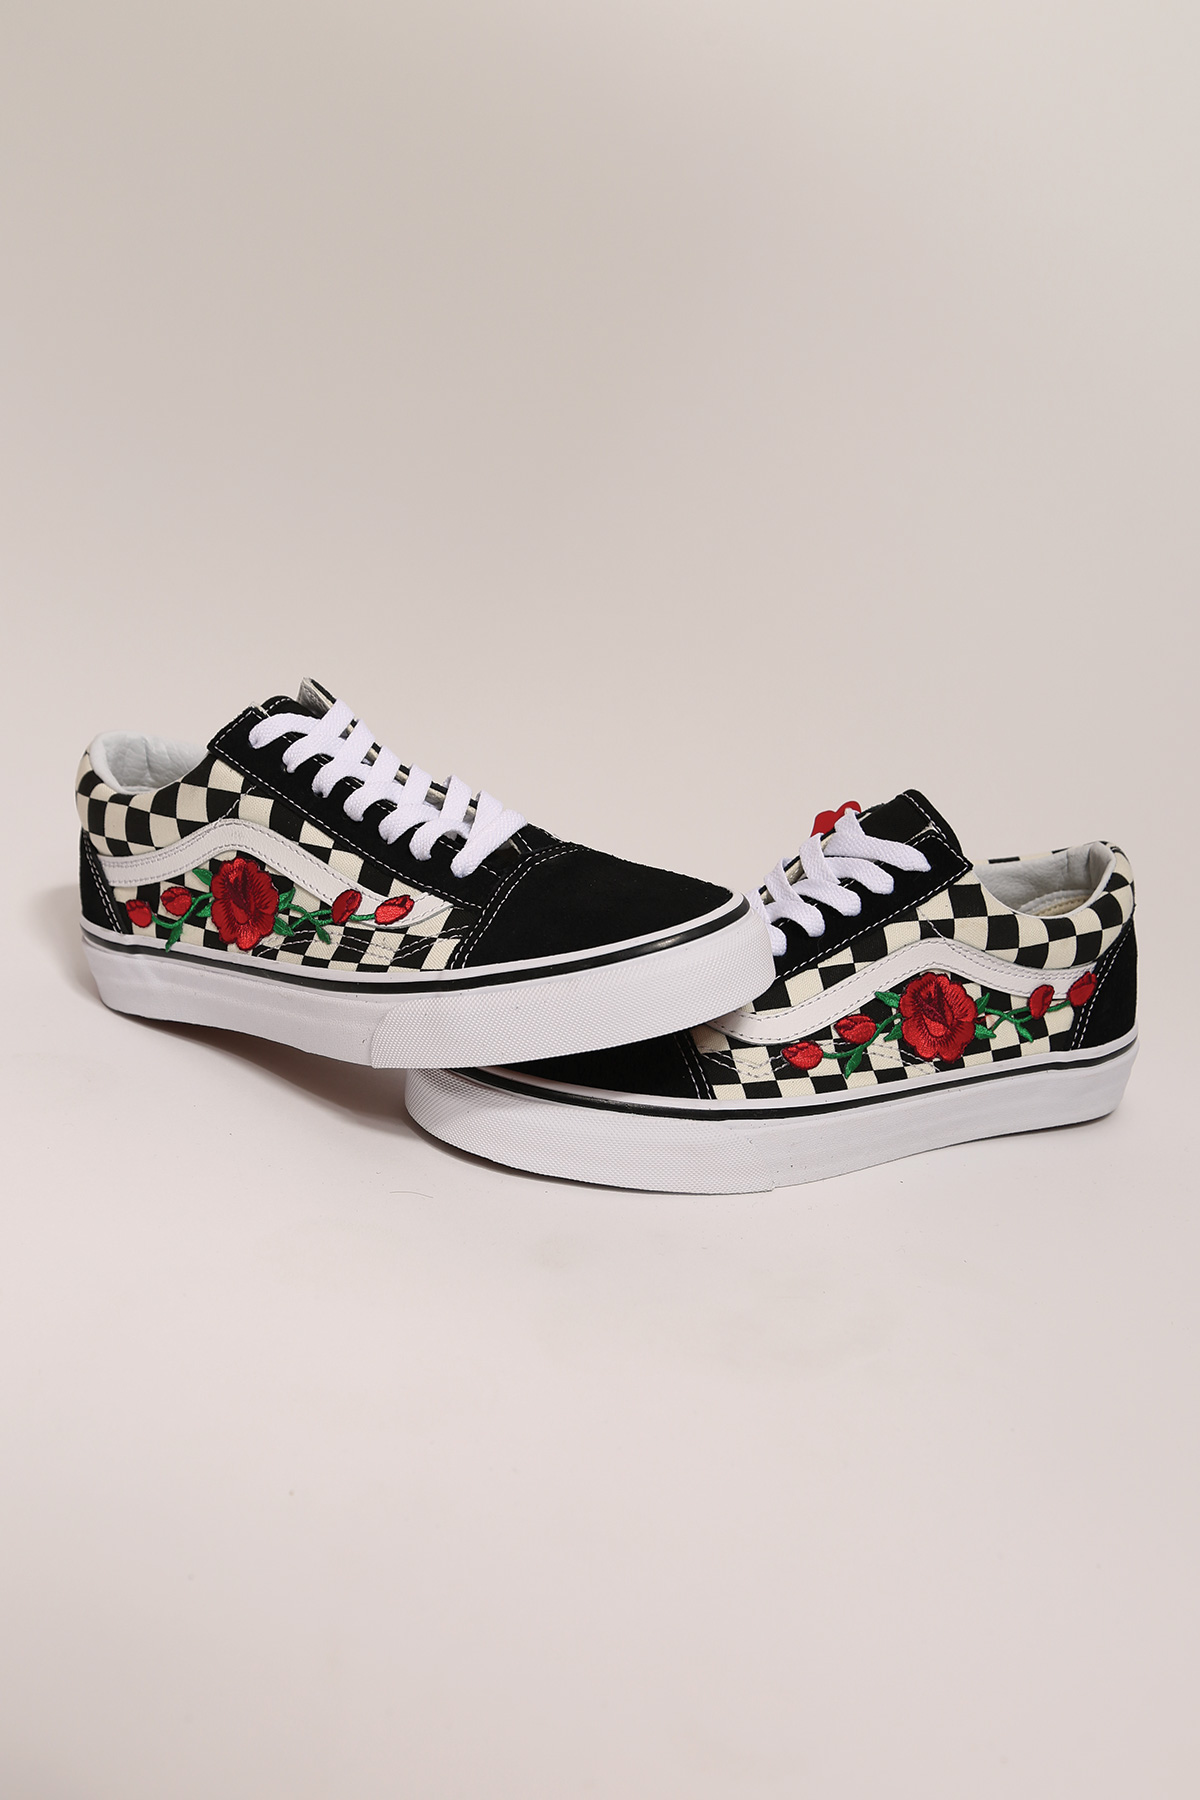 9a5fd2ba82 custom rose vans checkered old skool low top. checkered-rose1.jpg